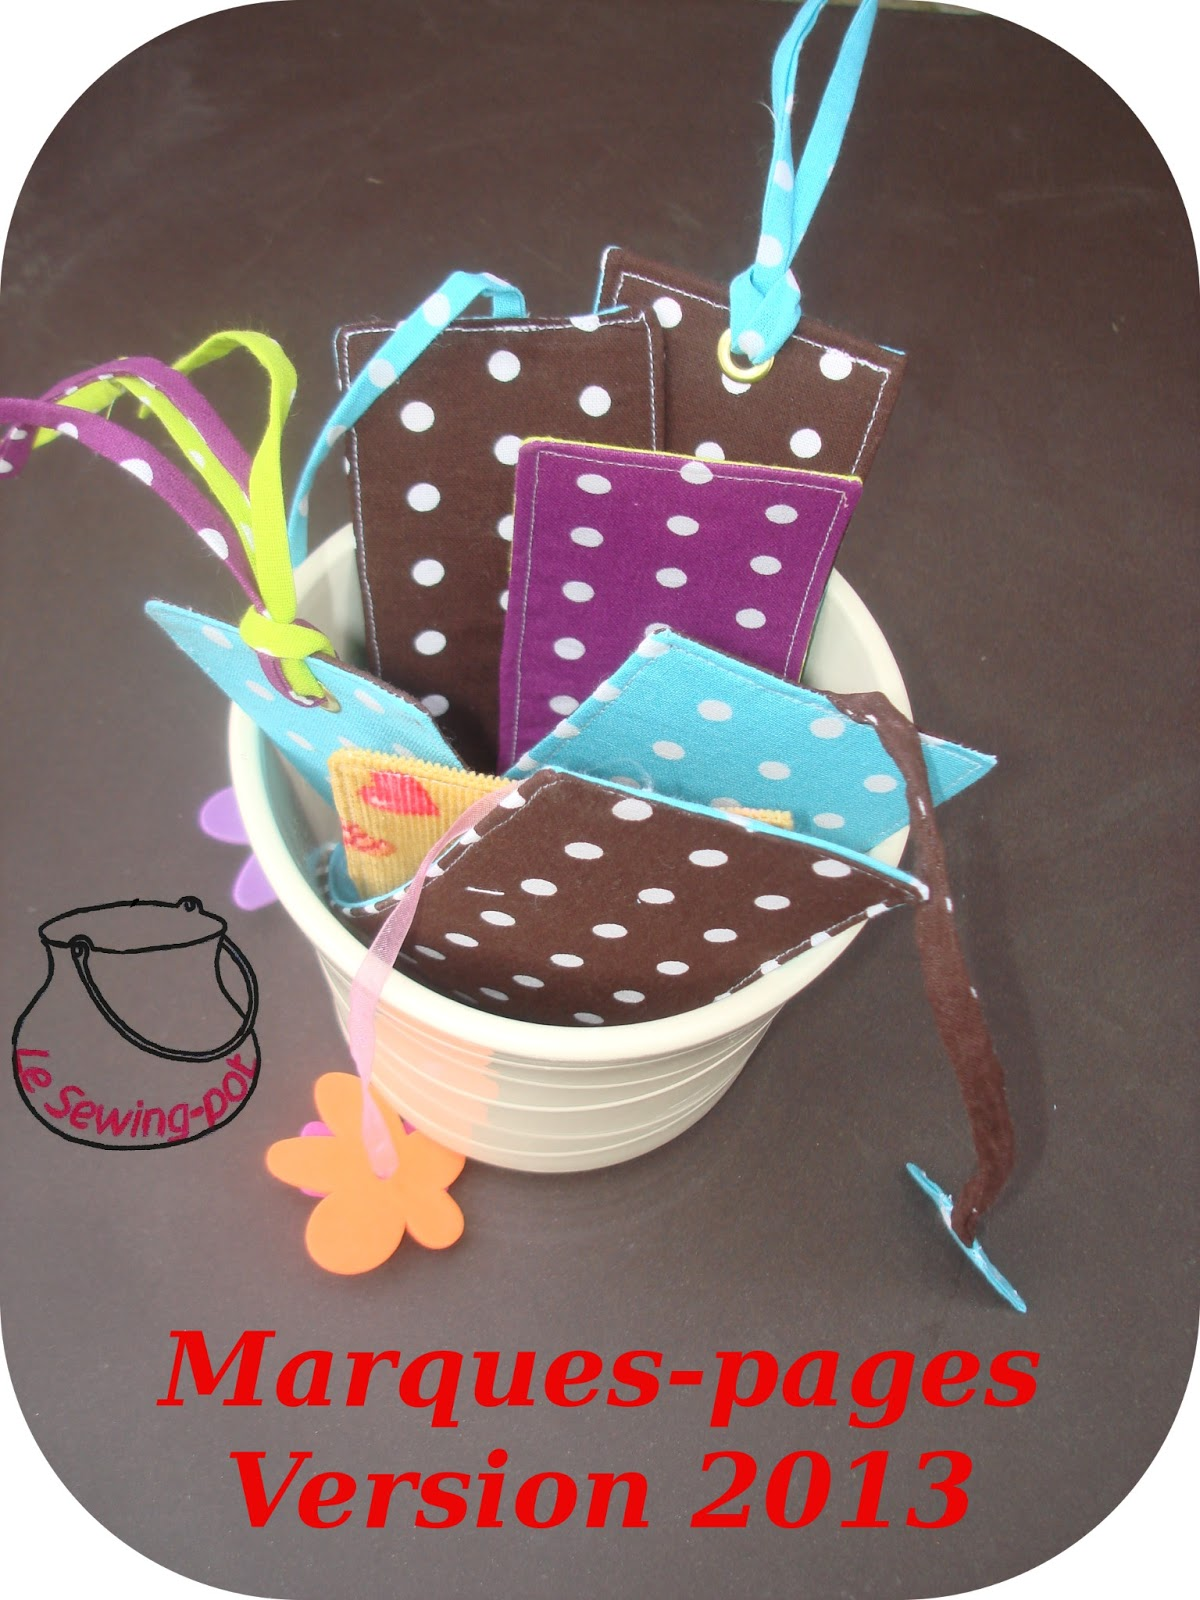 marques-pages